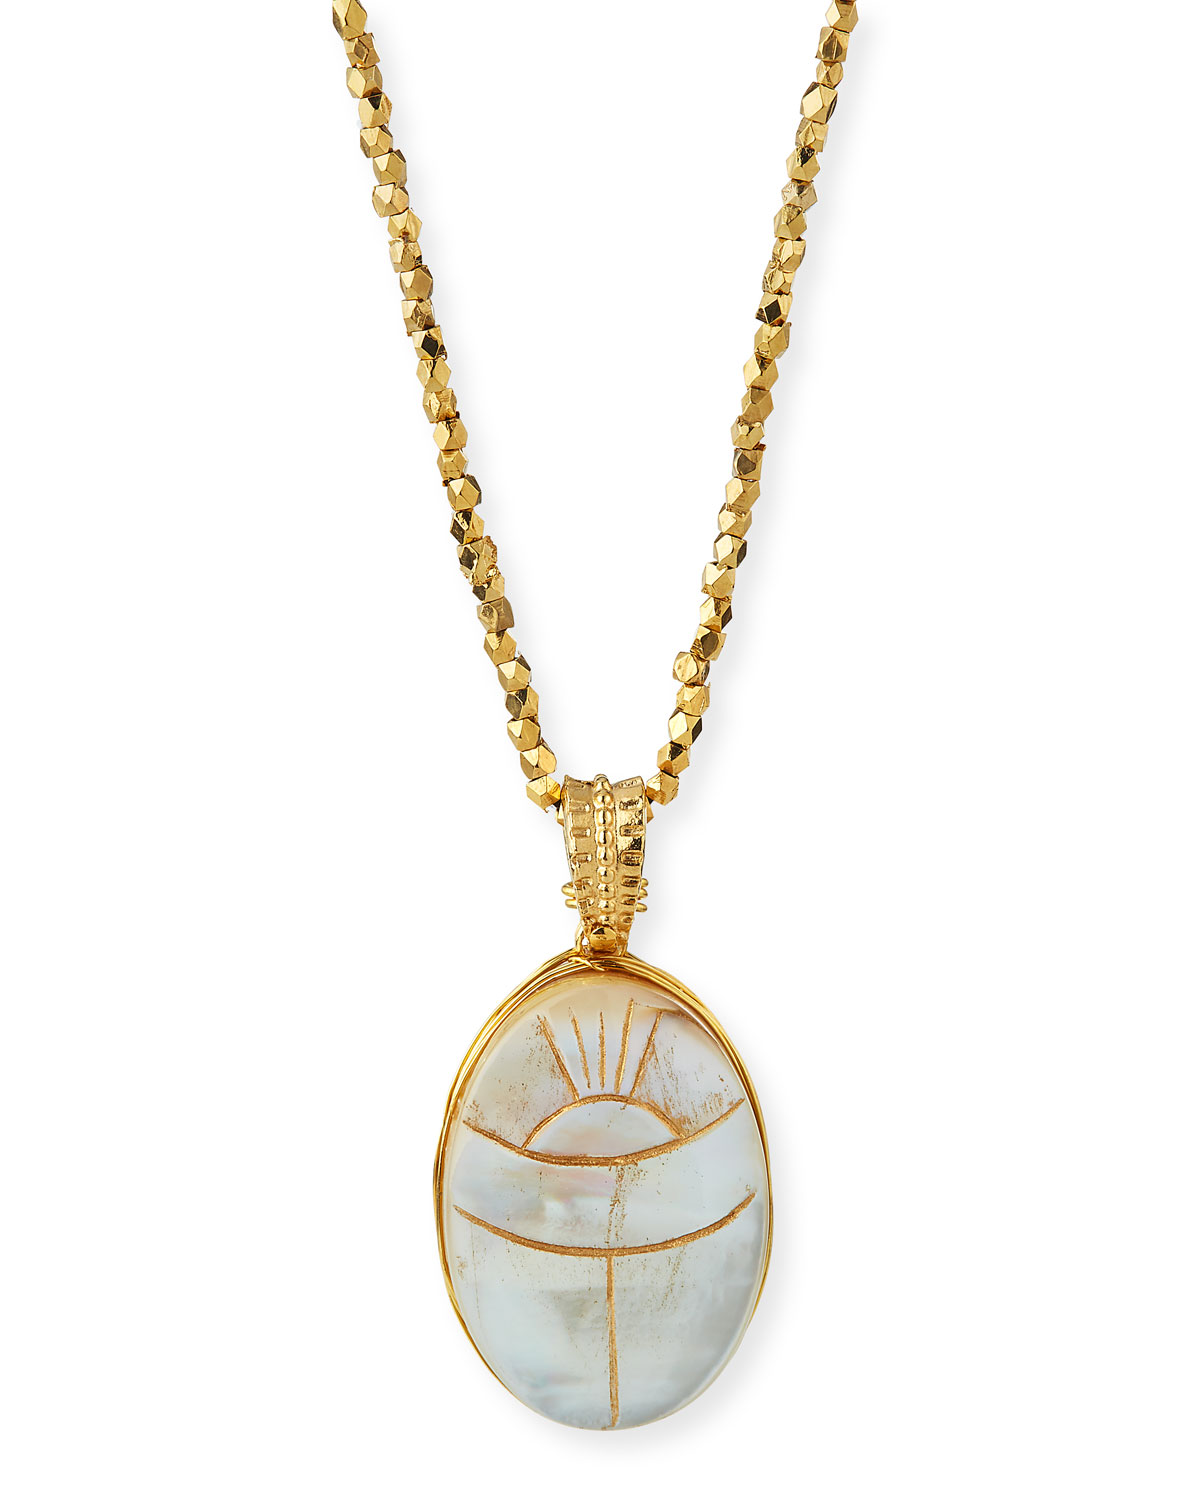 Lucky scarab necklace by Gas Bijoux. 24-karat yellow gold plating over brass. Oval pendant with mother-of-pearl. Approx. 32\